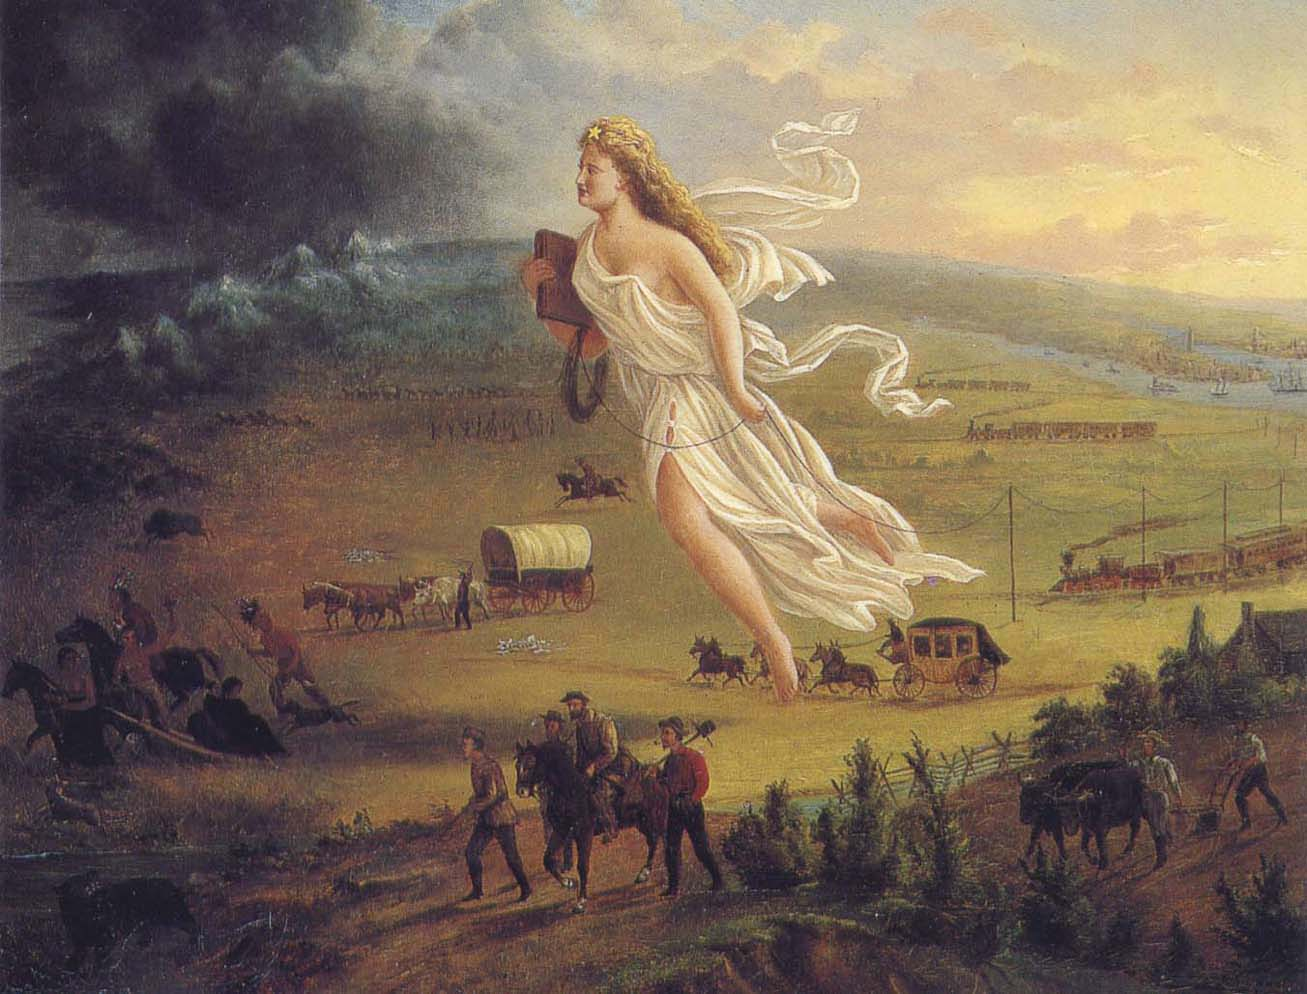 'American Progress' (1872) by John Gast. Depicting Columbia and Western migration, towards America's 'Manifest Destiny'.